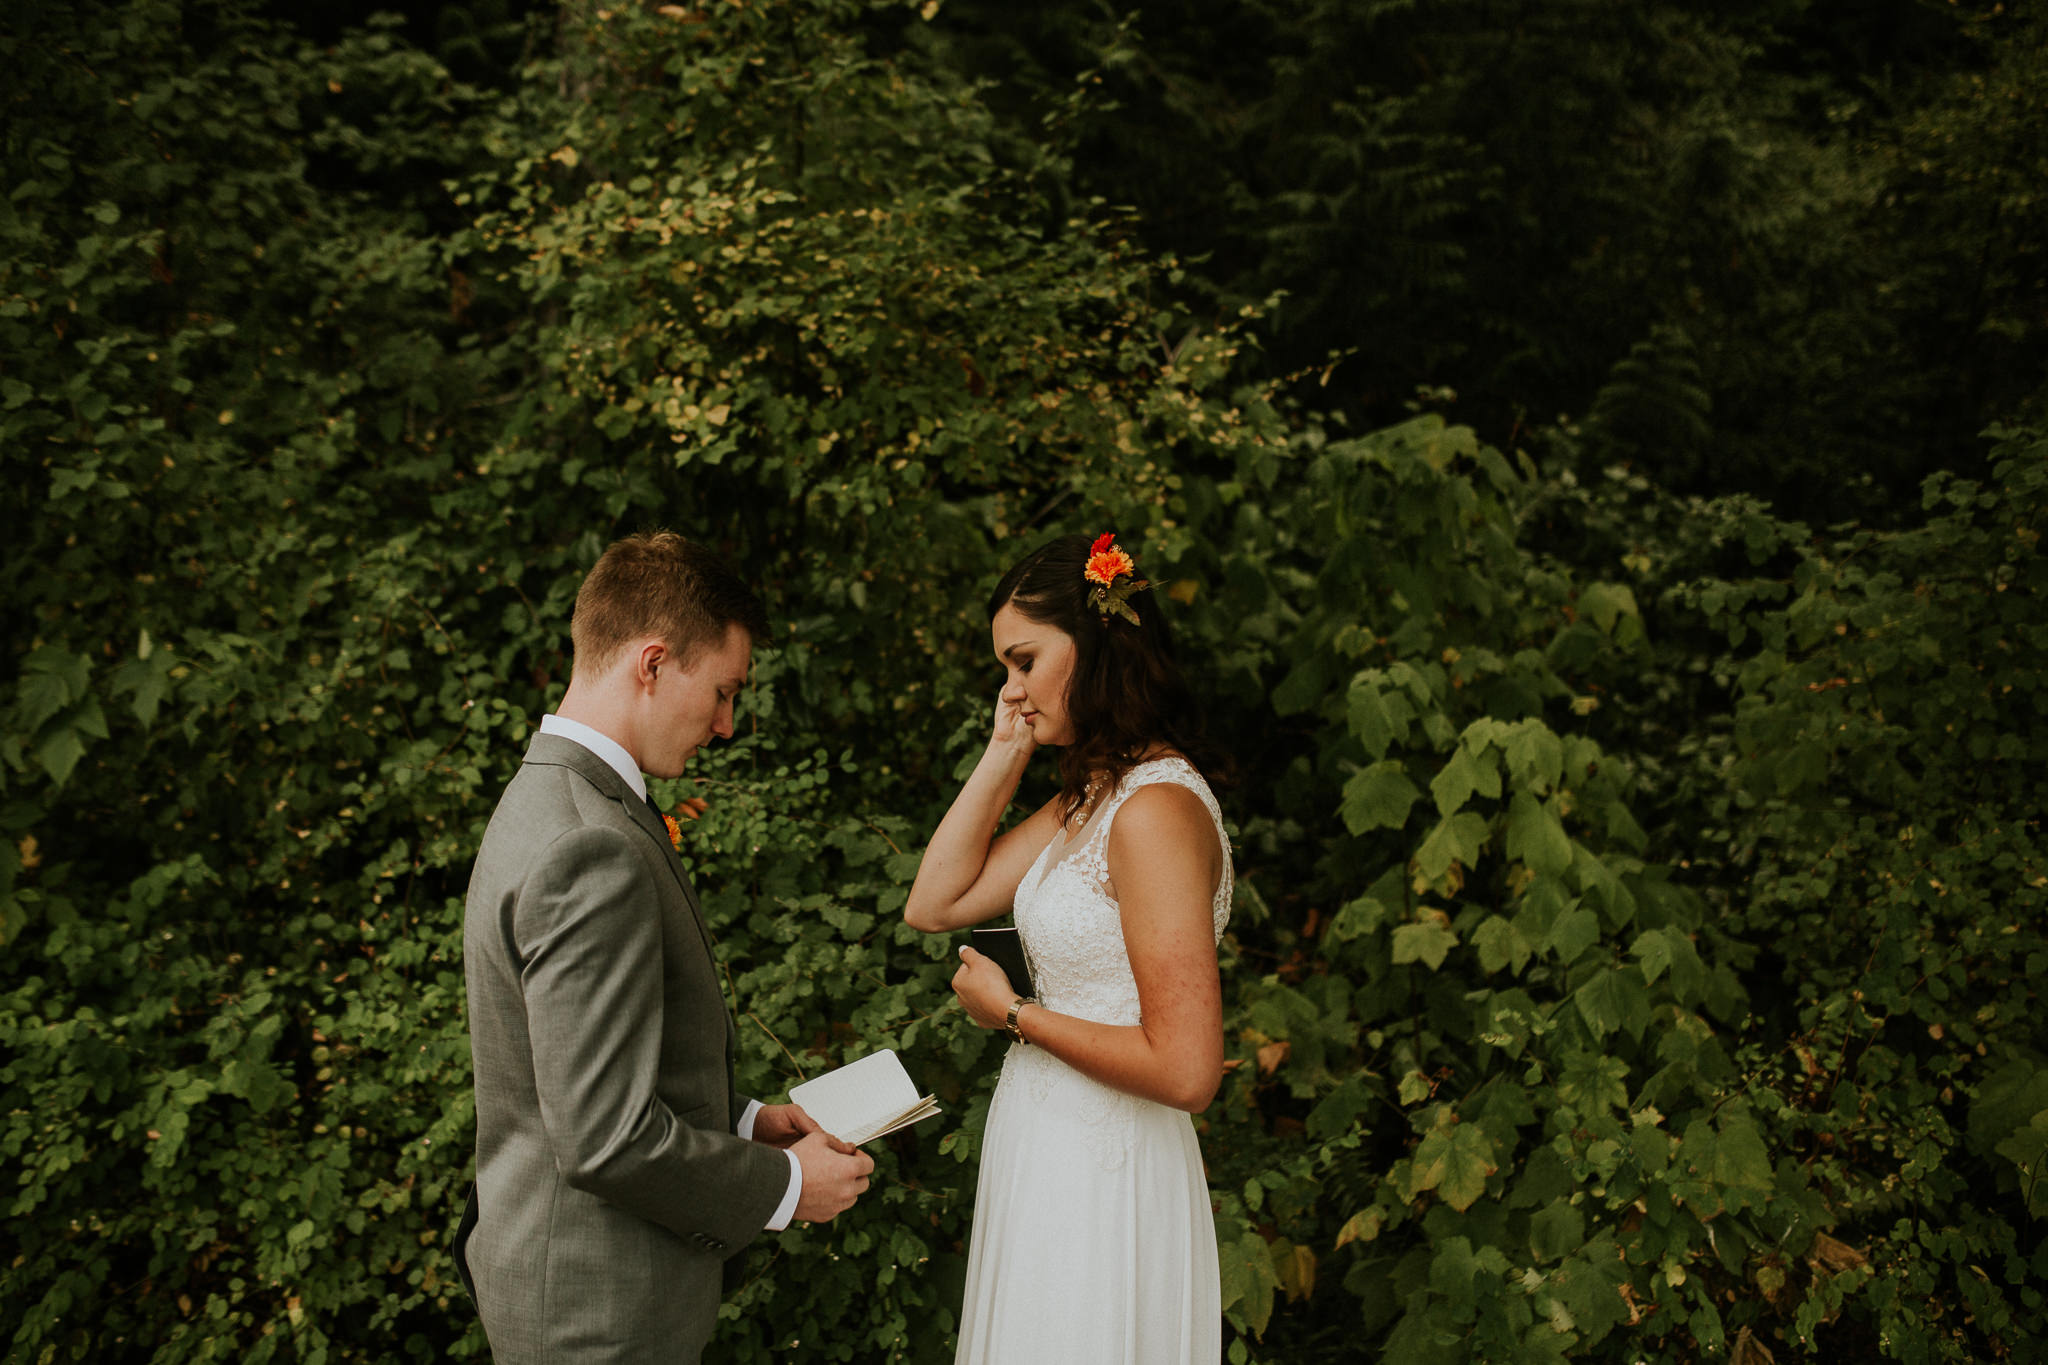 Port-Orchard-Manchester-Park-elopement-Bride-And-Groom-24.jpg